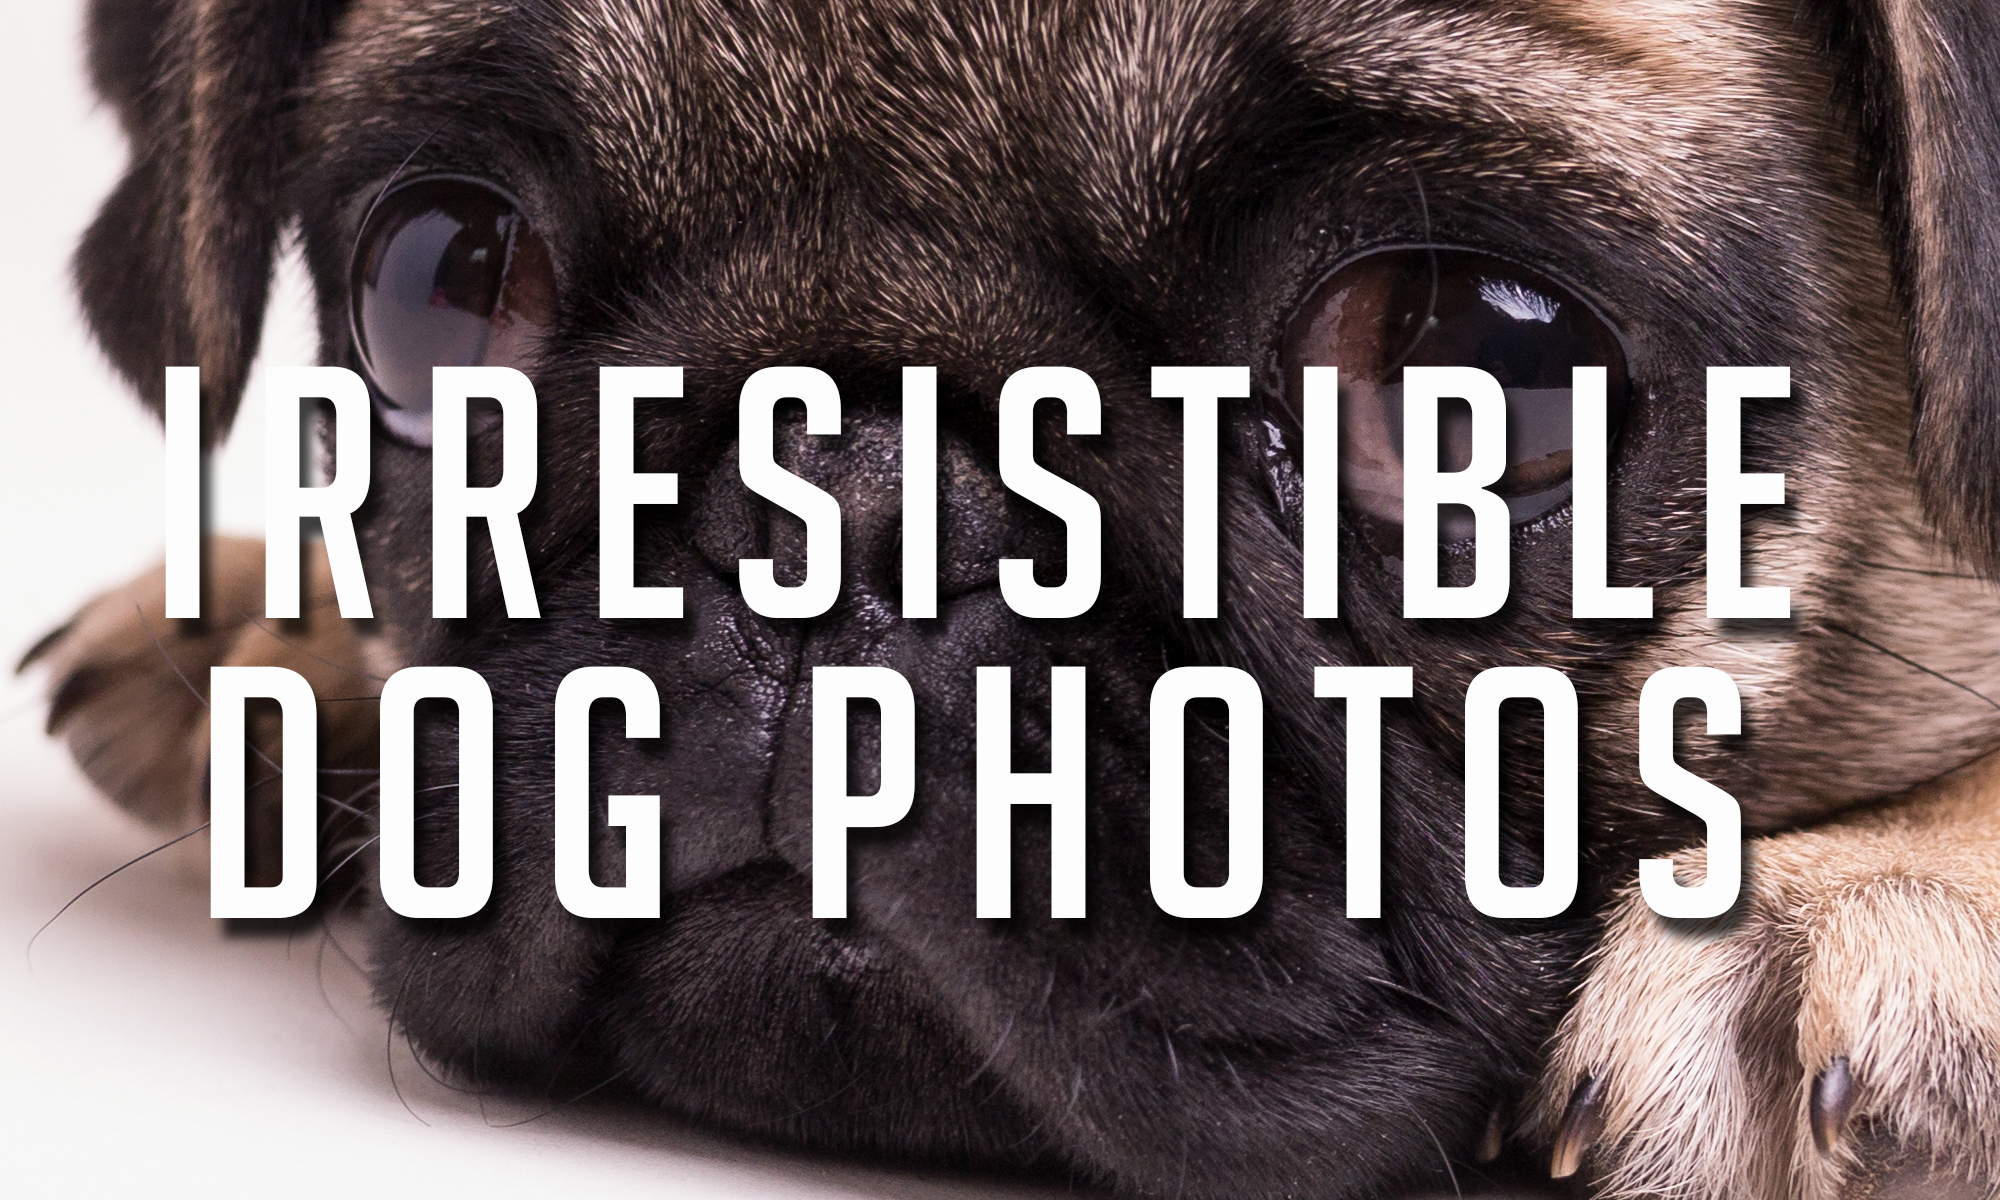 Irresistible Dog Photos